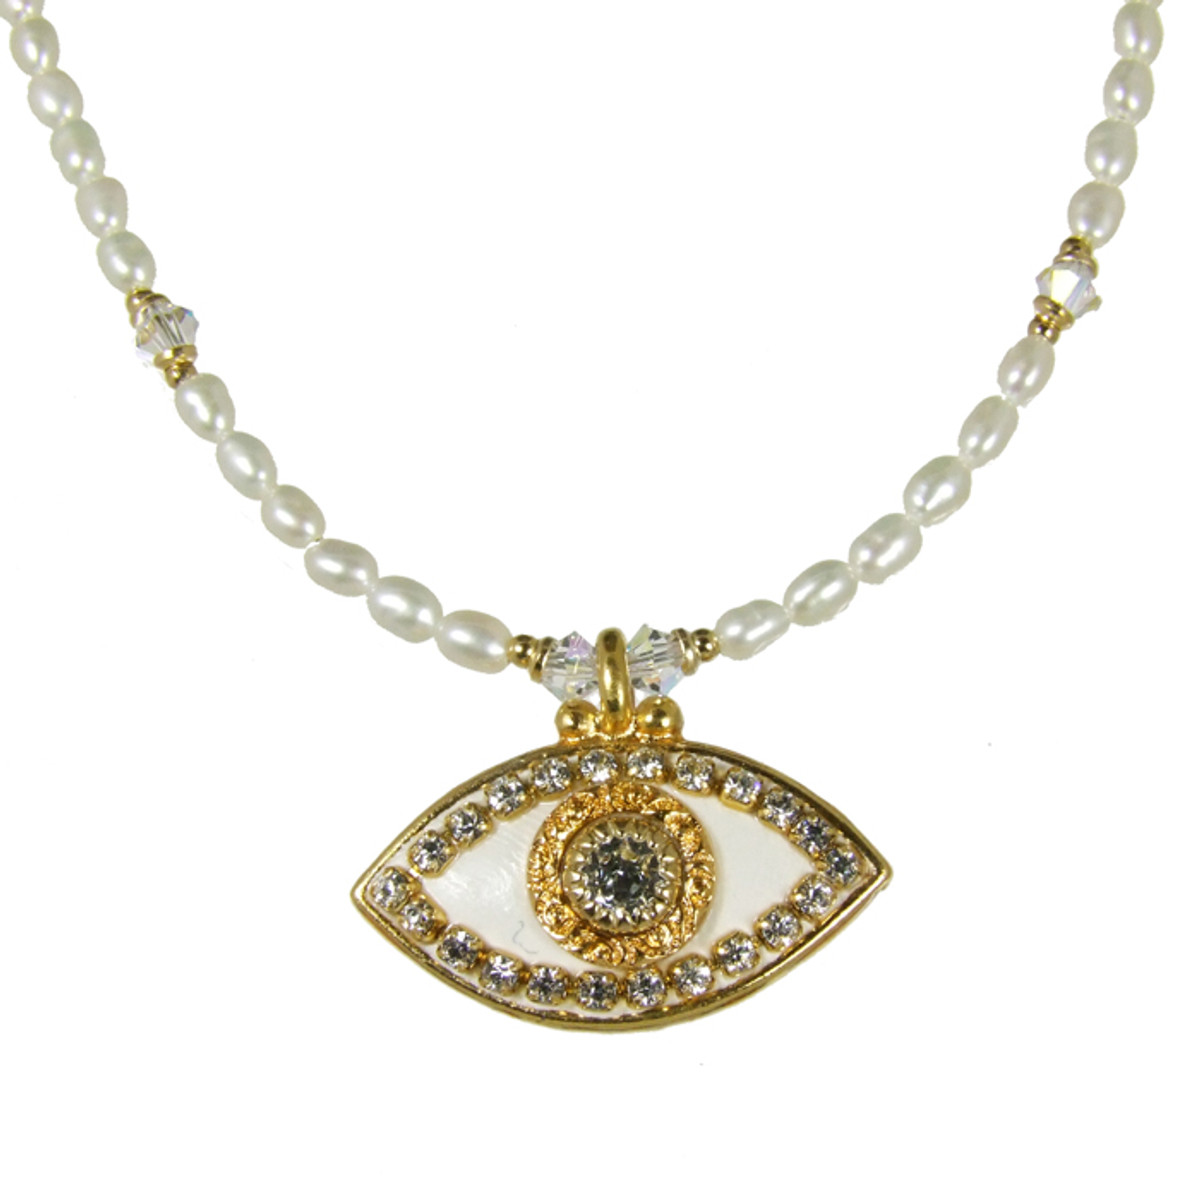 Evil Eye Necklace - Michal Golan White, Medium Eye With Clear Crystals On Single Beaded Chain